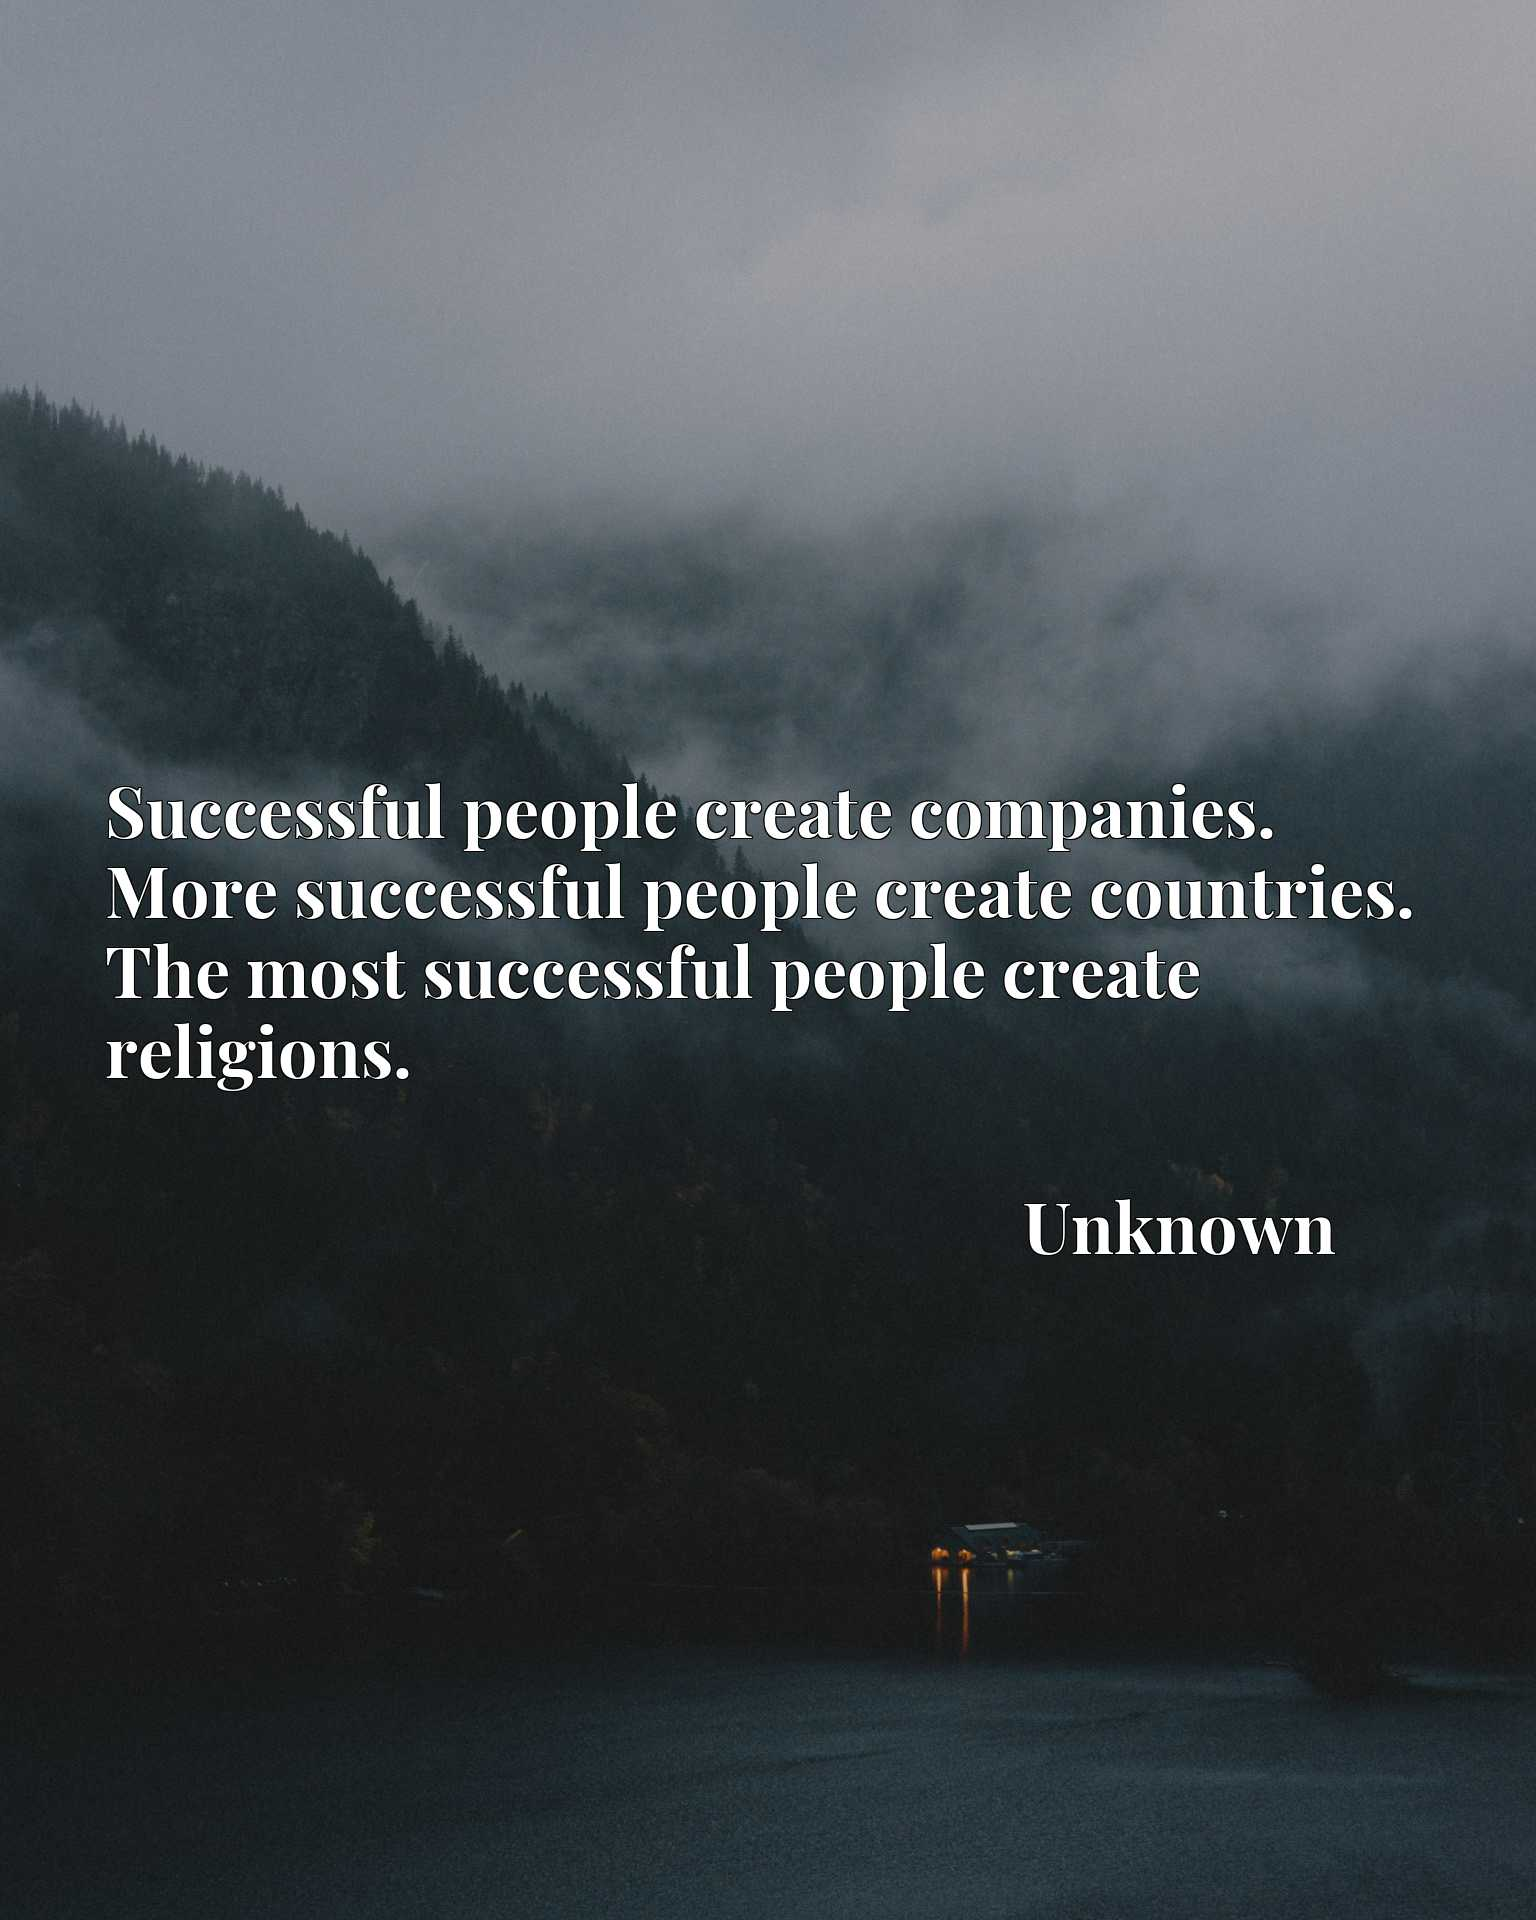 Quote Picture :Successful people create companies. More successful people create countries. The most successful people create religions.